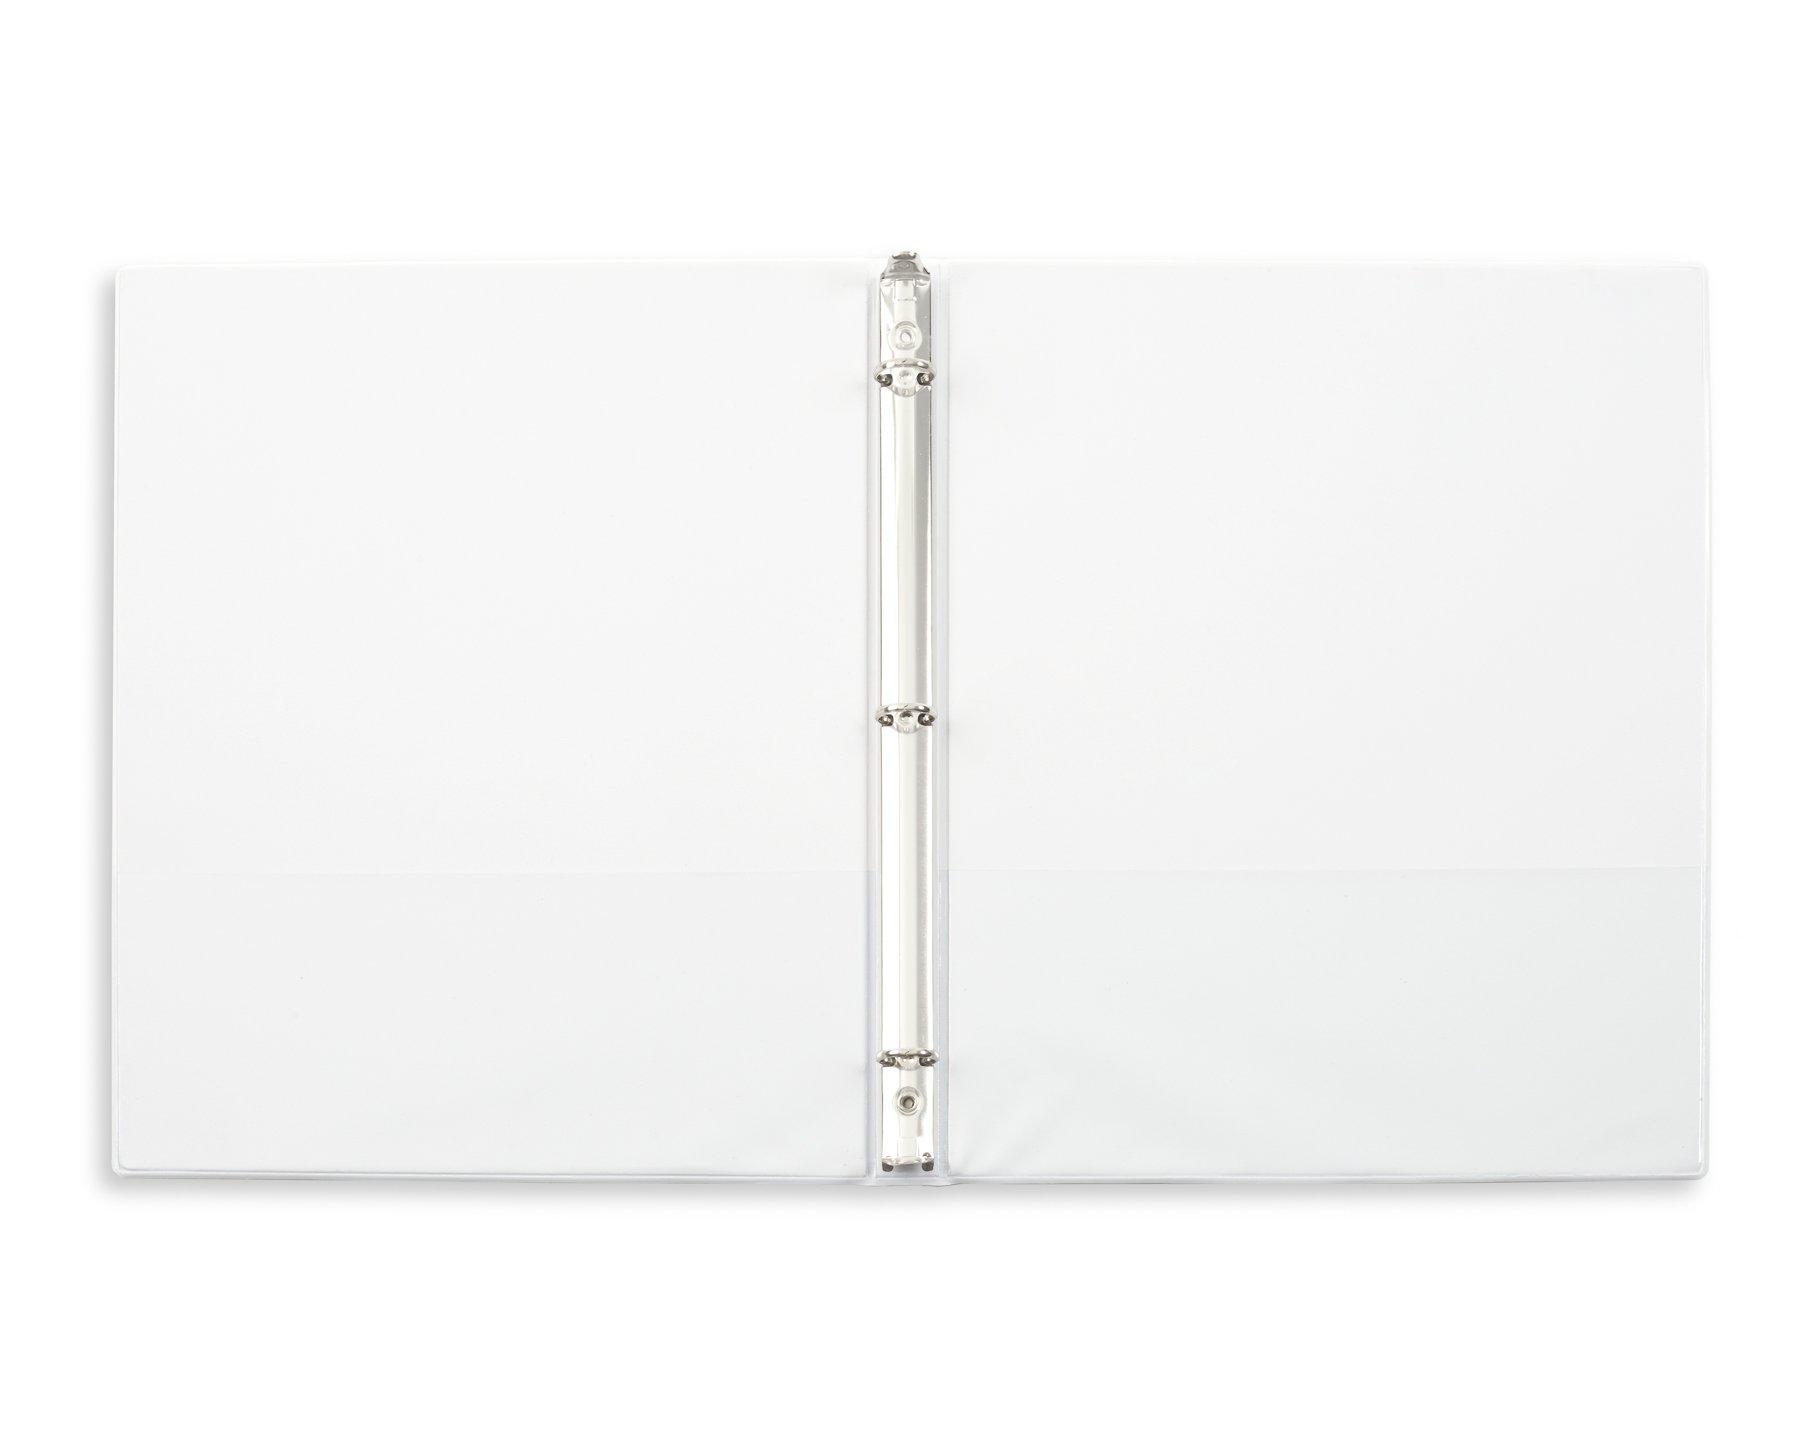 Blue Summit Supplies 10 Pack of 1/2 inch 3-Ring Economy Binders, White, Bulk Clear Cover Binders for Home, Office, and School, 8 1/2 inch x 11 inch Paper, Value Pack by Blue Summit Supplies (Image #4)